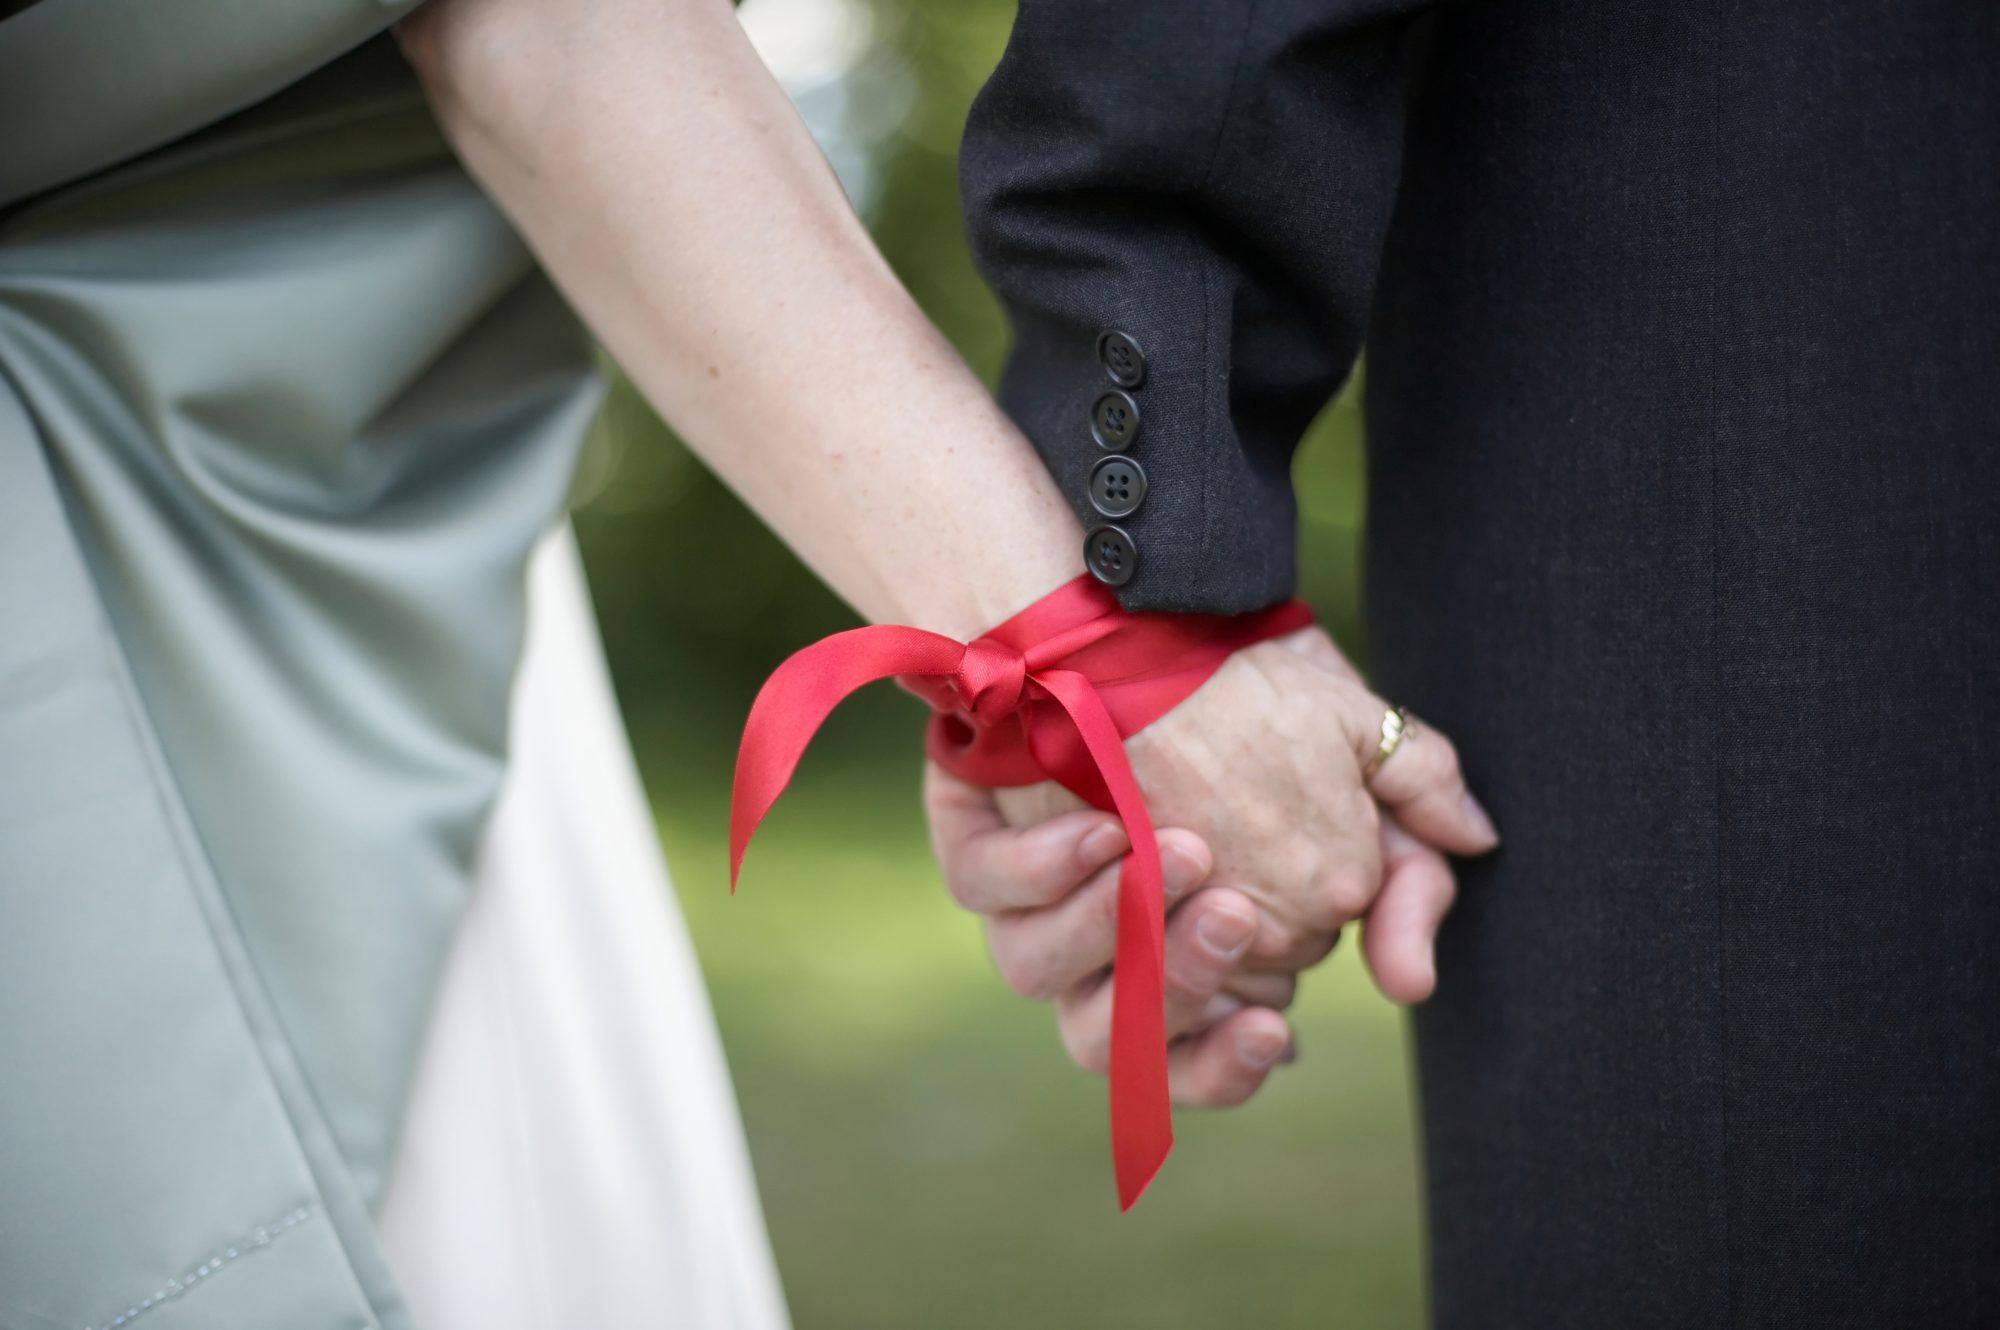 Couple's hands tied with red ribbon